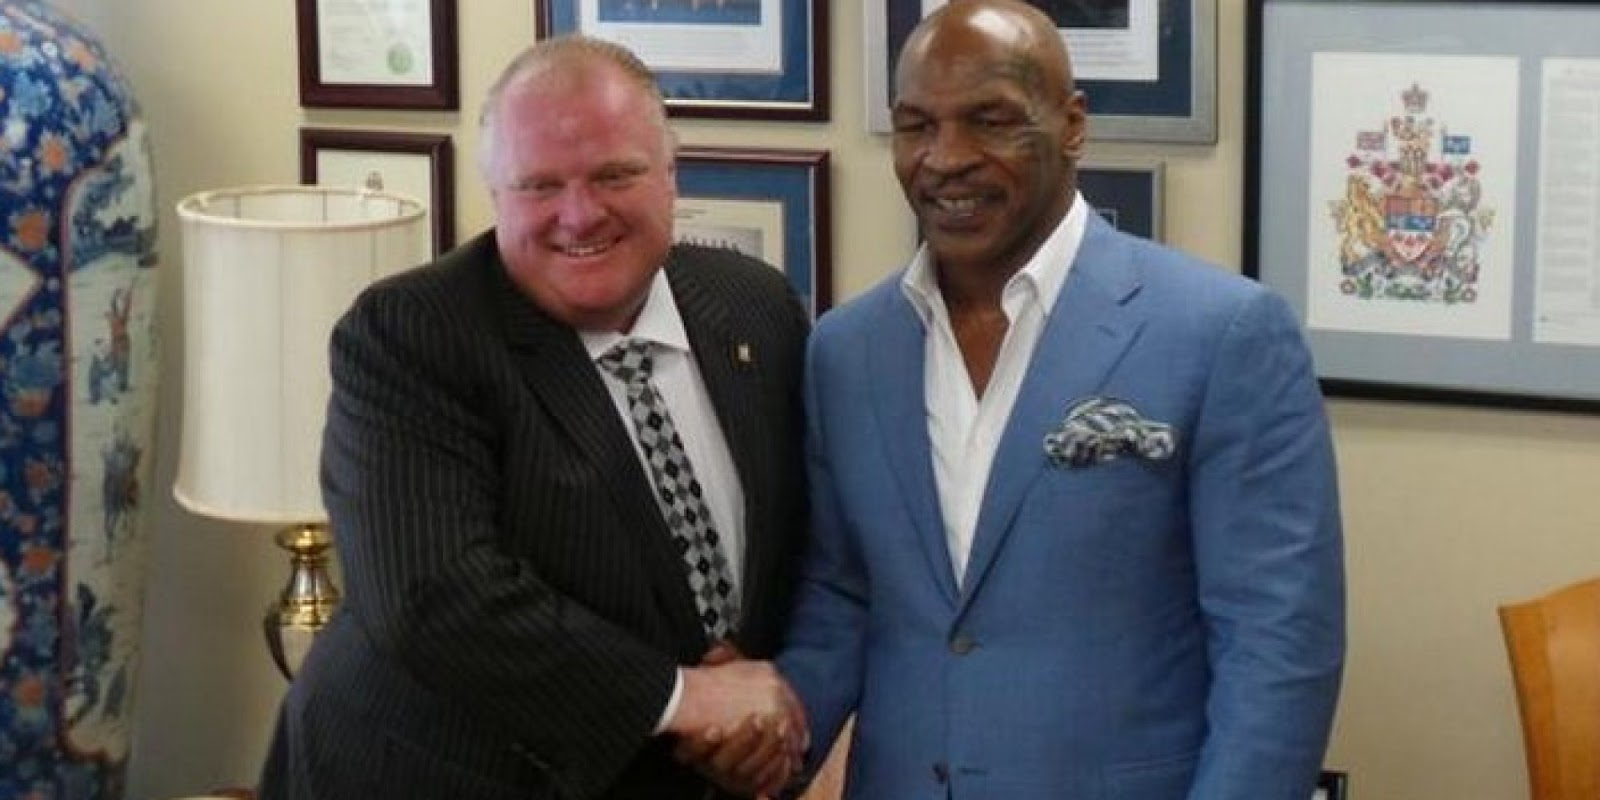 Fuck rob ford two wife beaters meet mike tyson and rob ford two wife beaters meet mike tyson and rob ford m4hsunfo